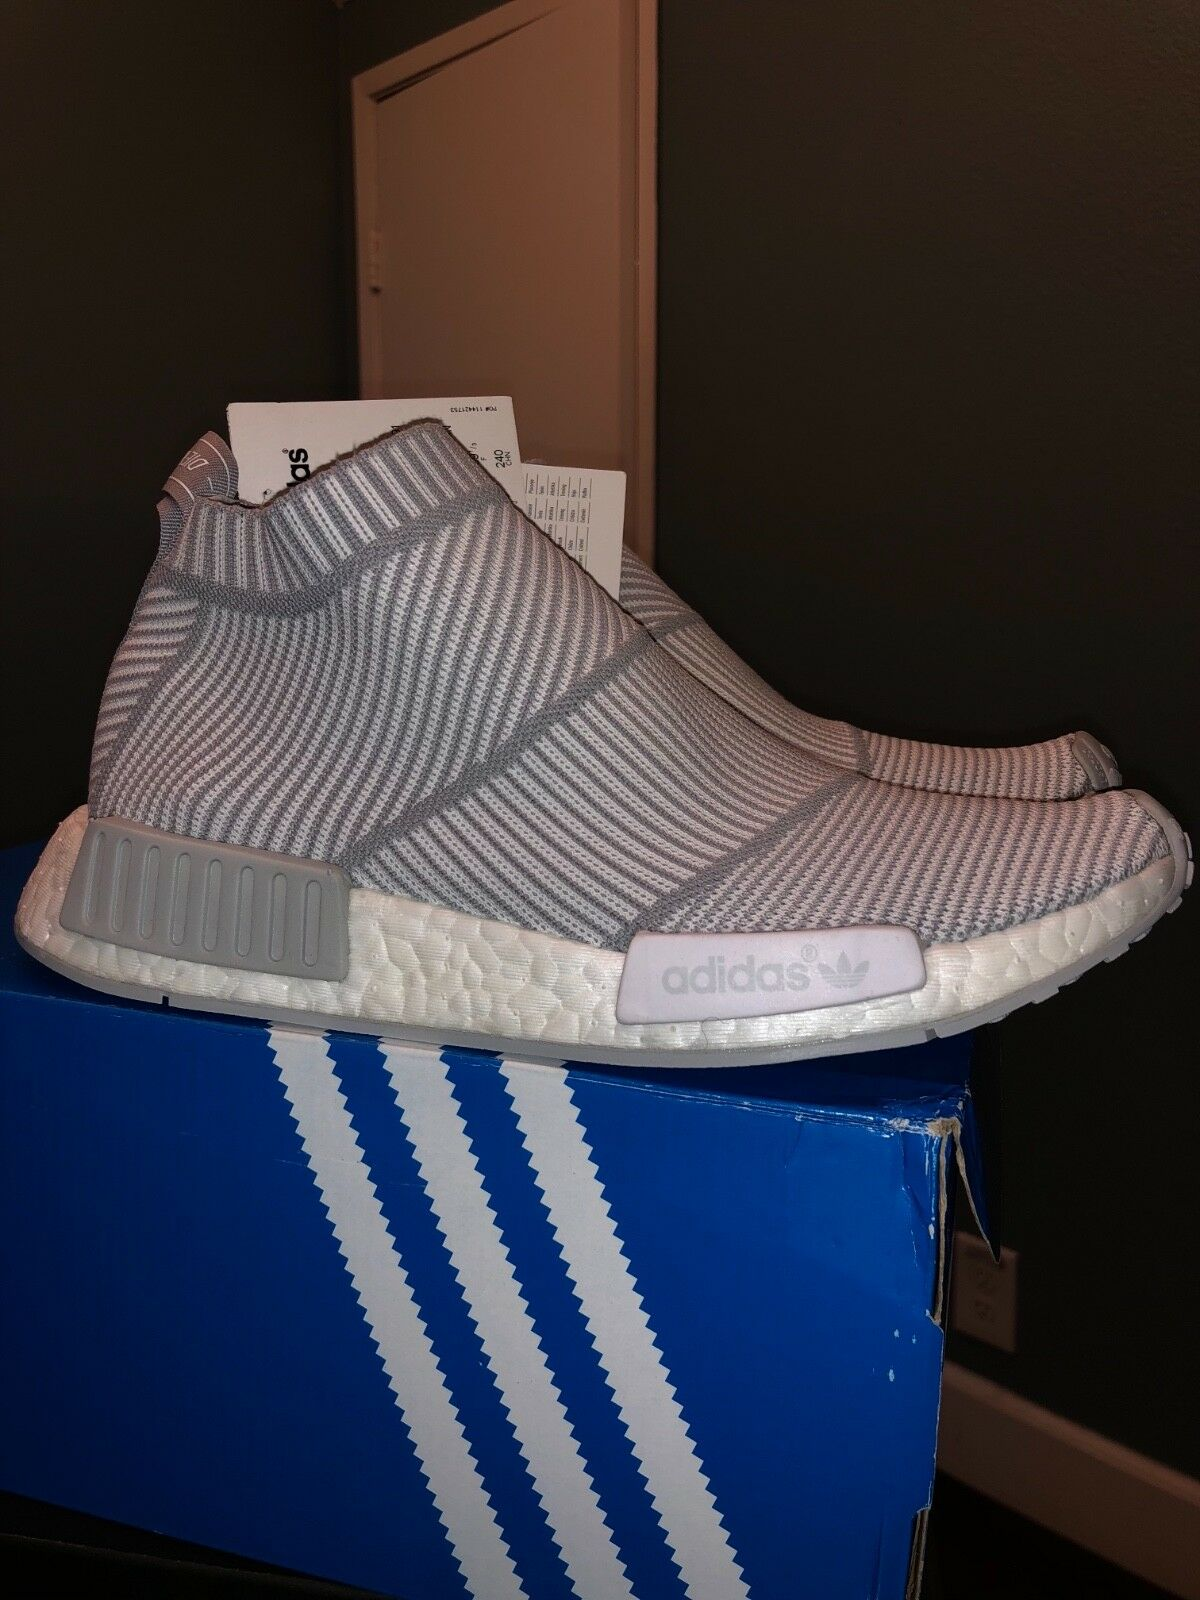 AUTHENTIC ADIDAS NMD CITY SOCK PK BOOST CS1 STYLE S32191 WHITE/GREY SIZE 6.5 MEN